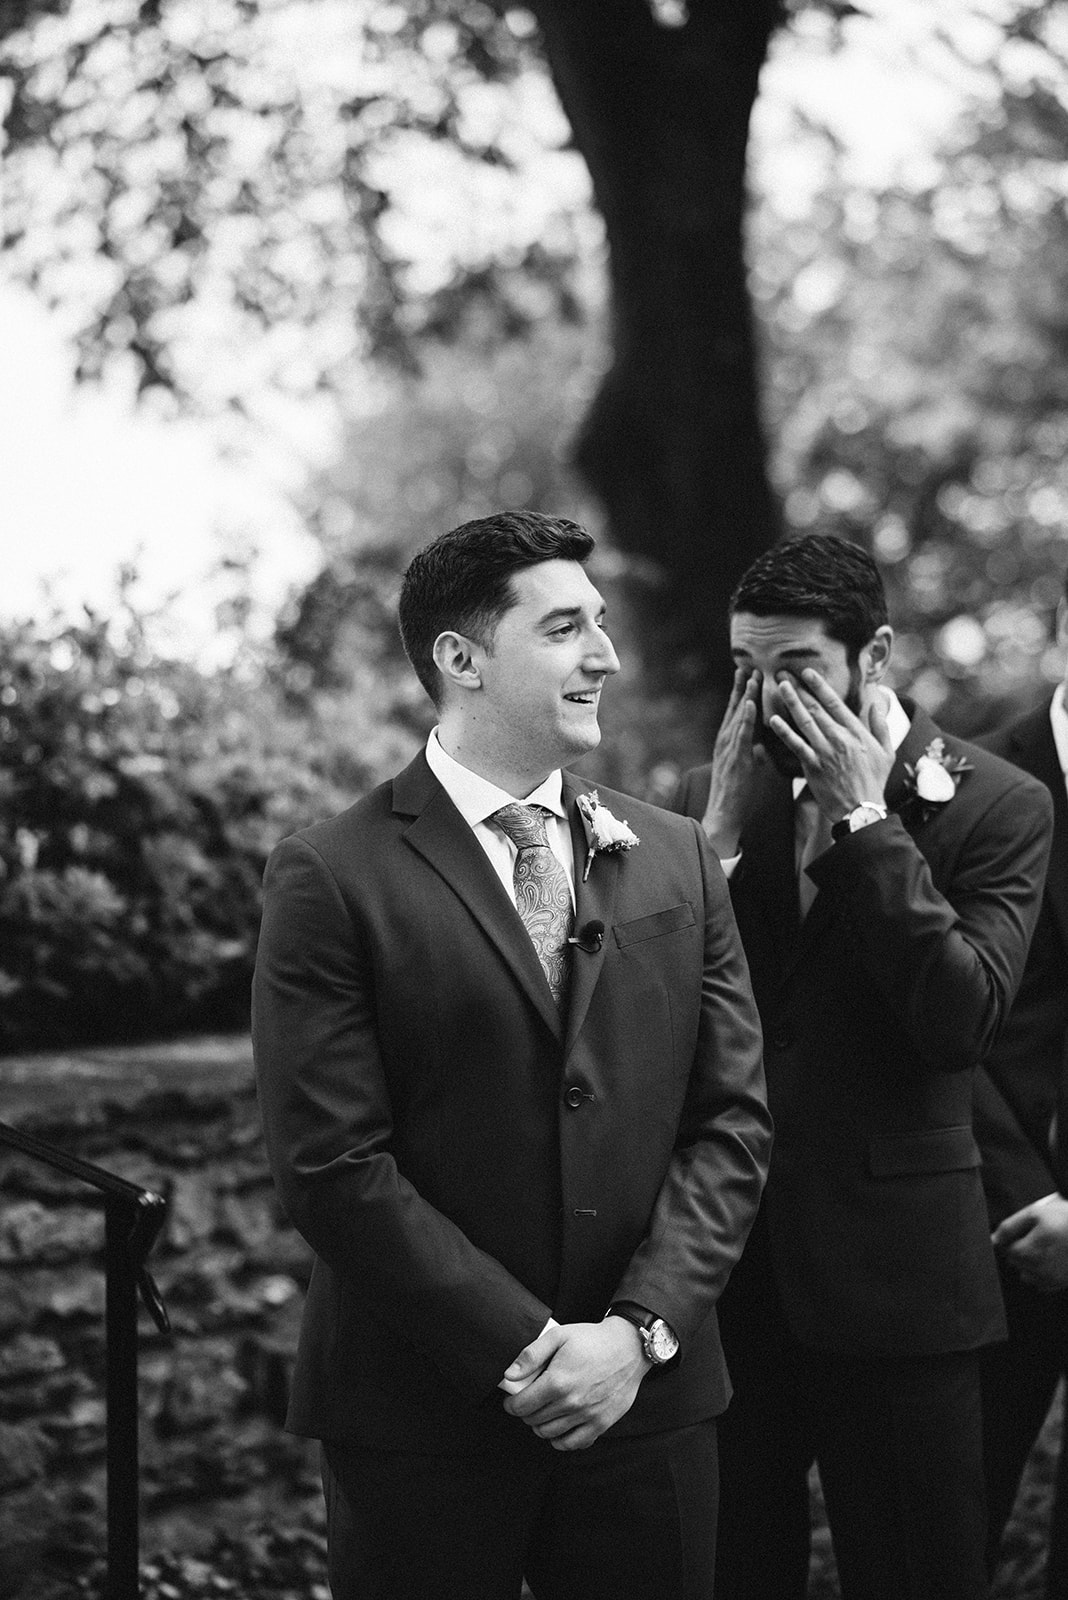 The groom gets emotional as he sees his bride walk down the aisle during their ceremony.